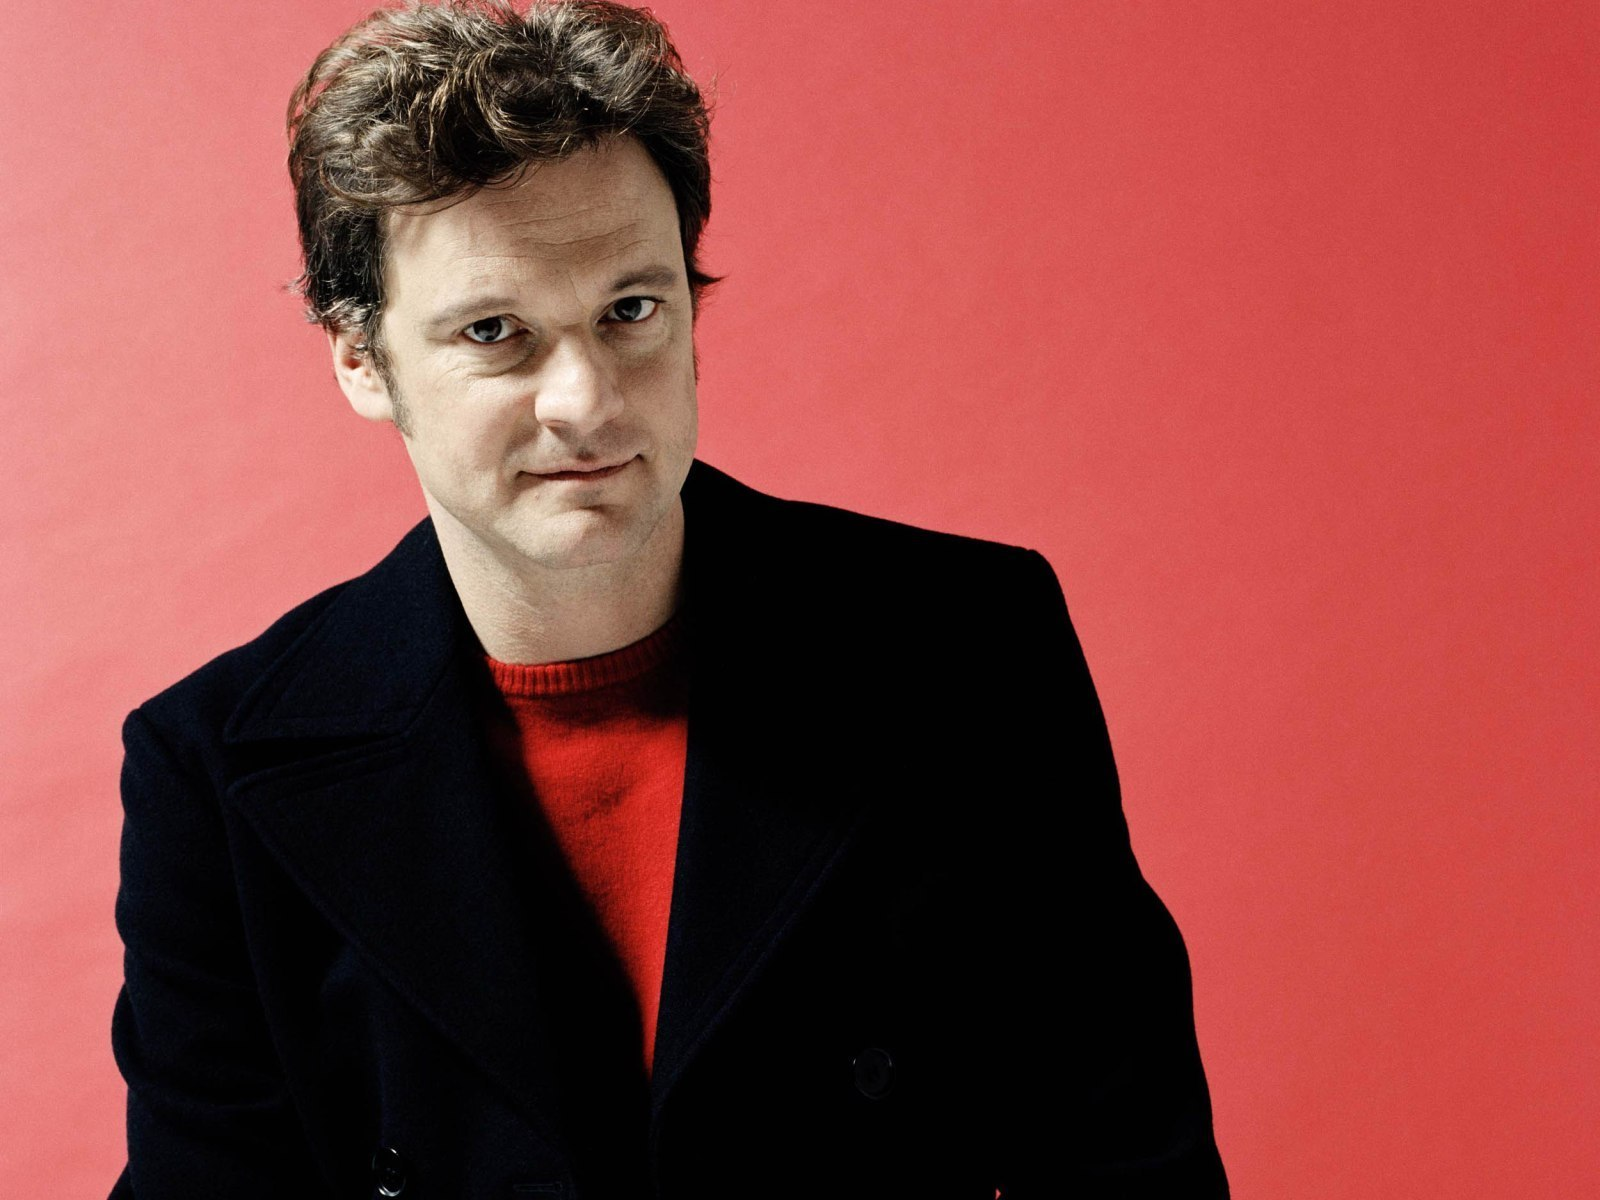 1600x1200 - Colin Firth Wallpapers 9